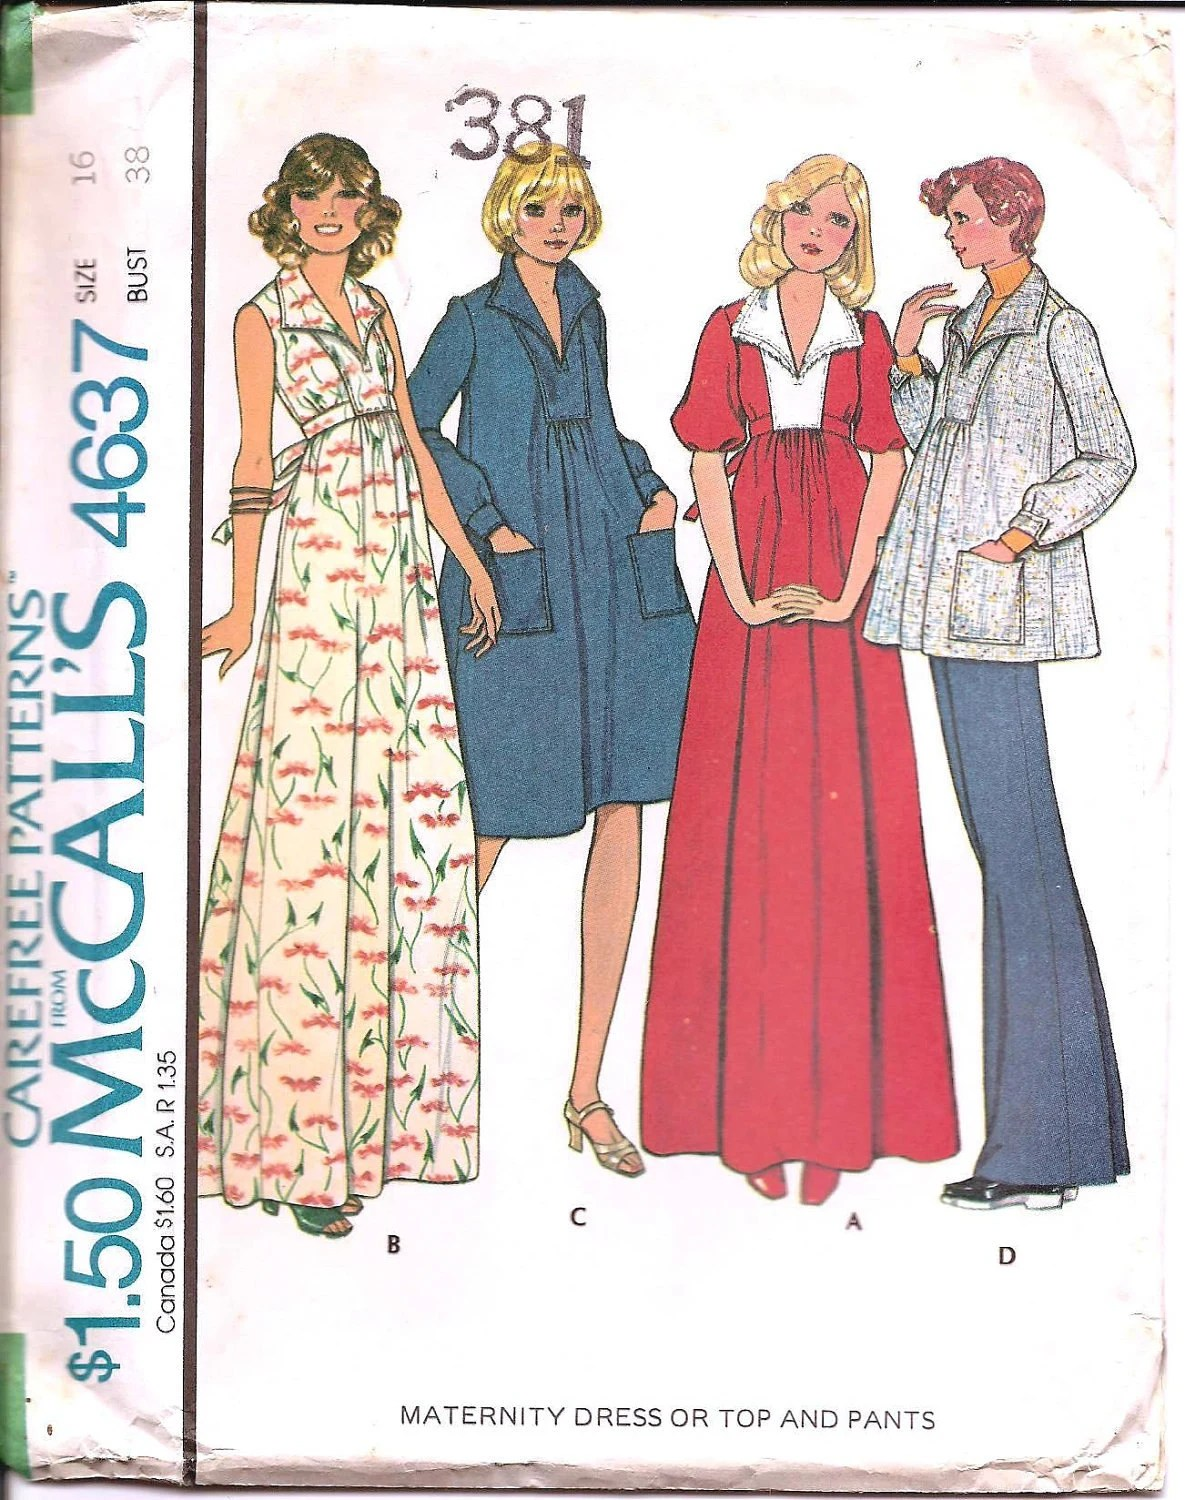 1970s Maternity Dress Top - Vintage Sewing Pattern McCall's 4637 - 38 Bust UNCUT